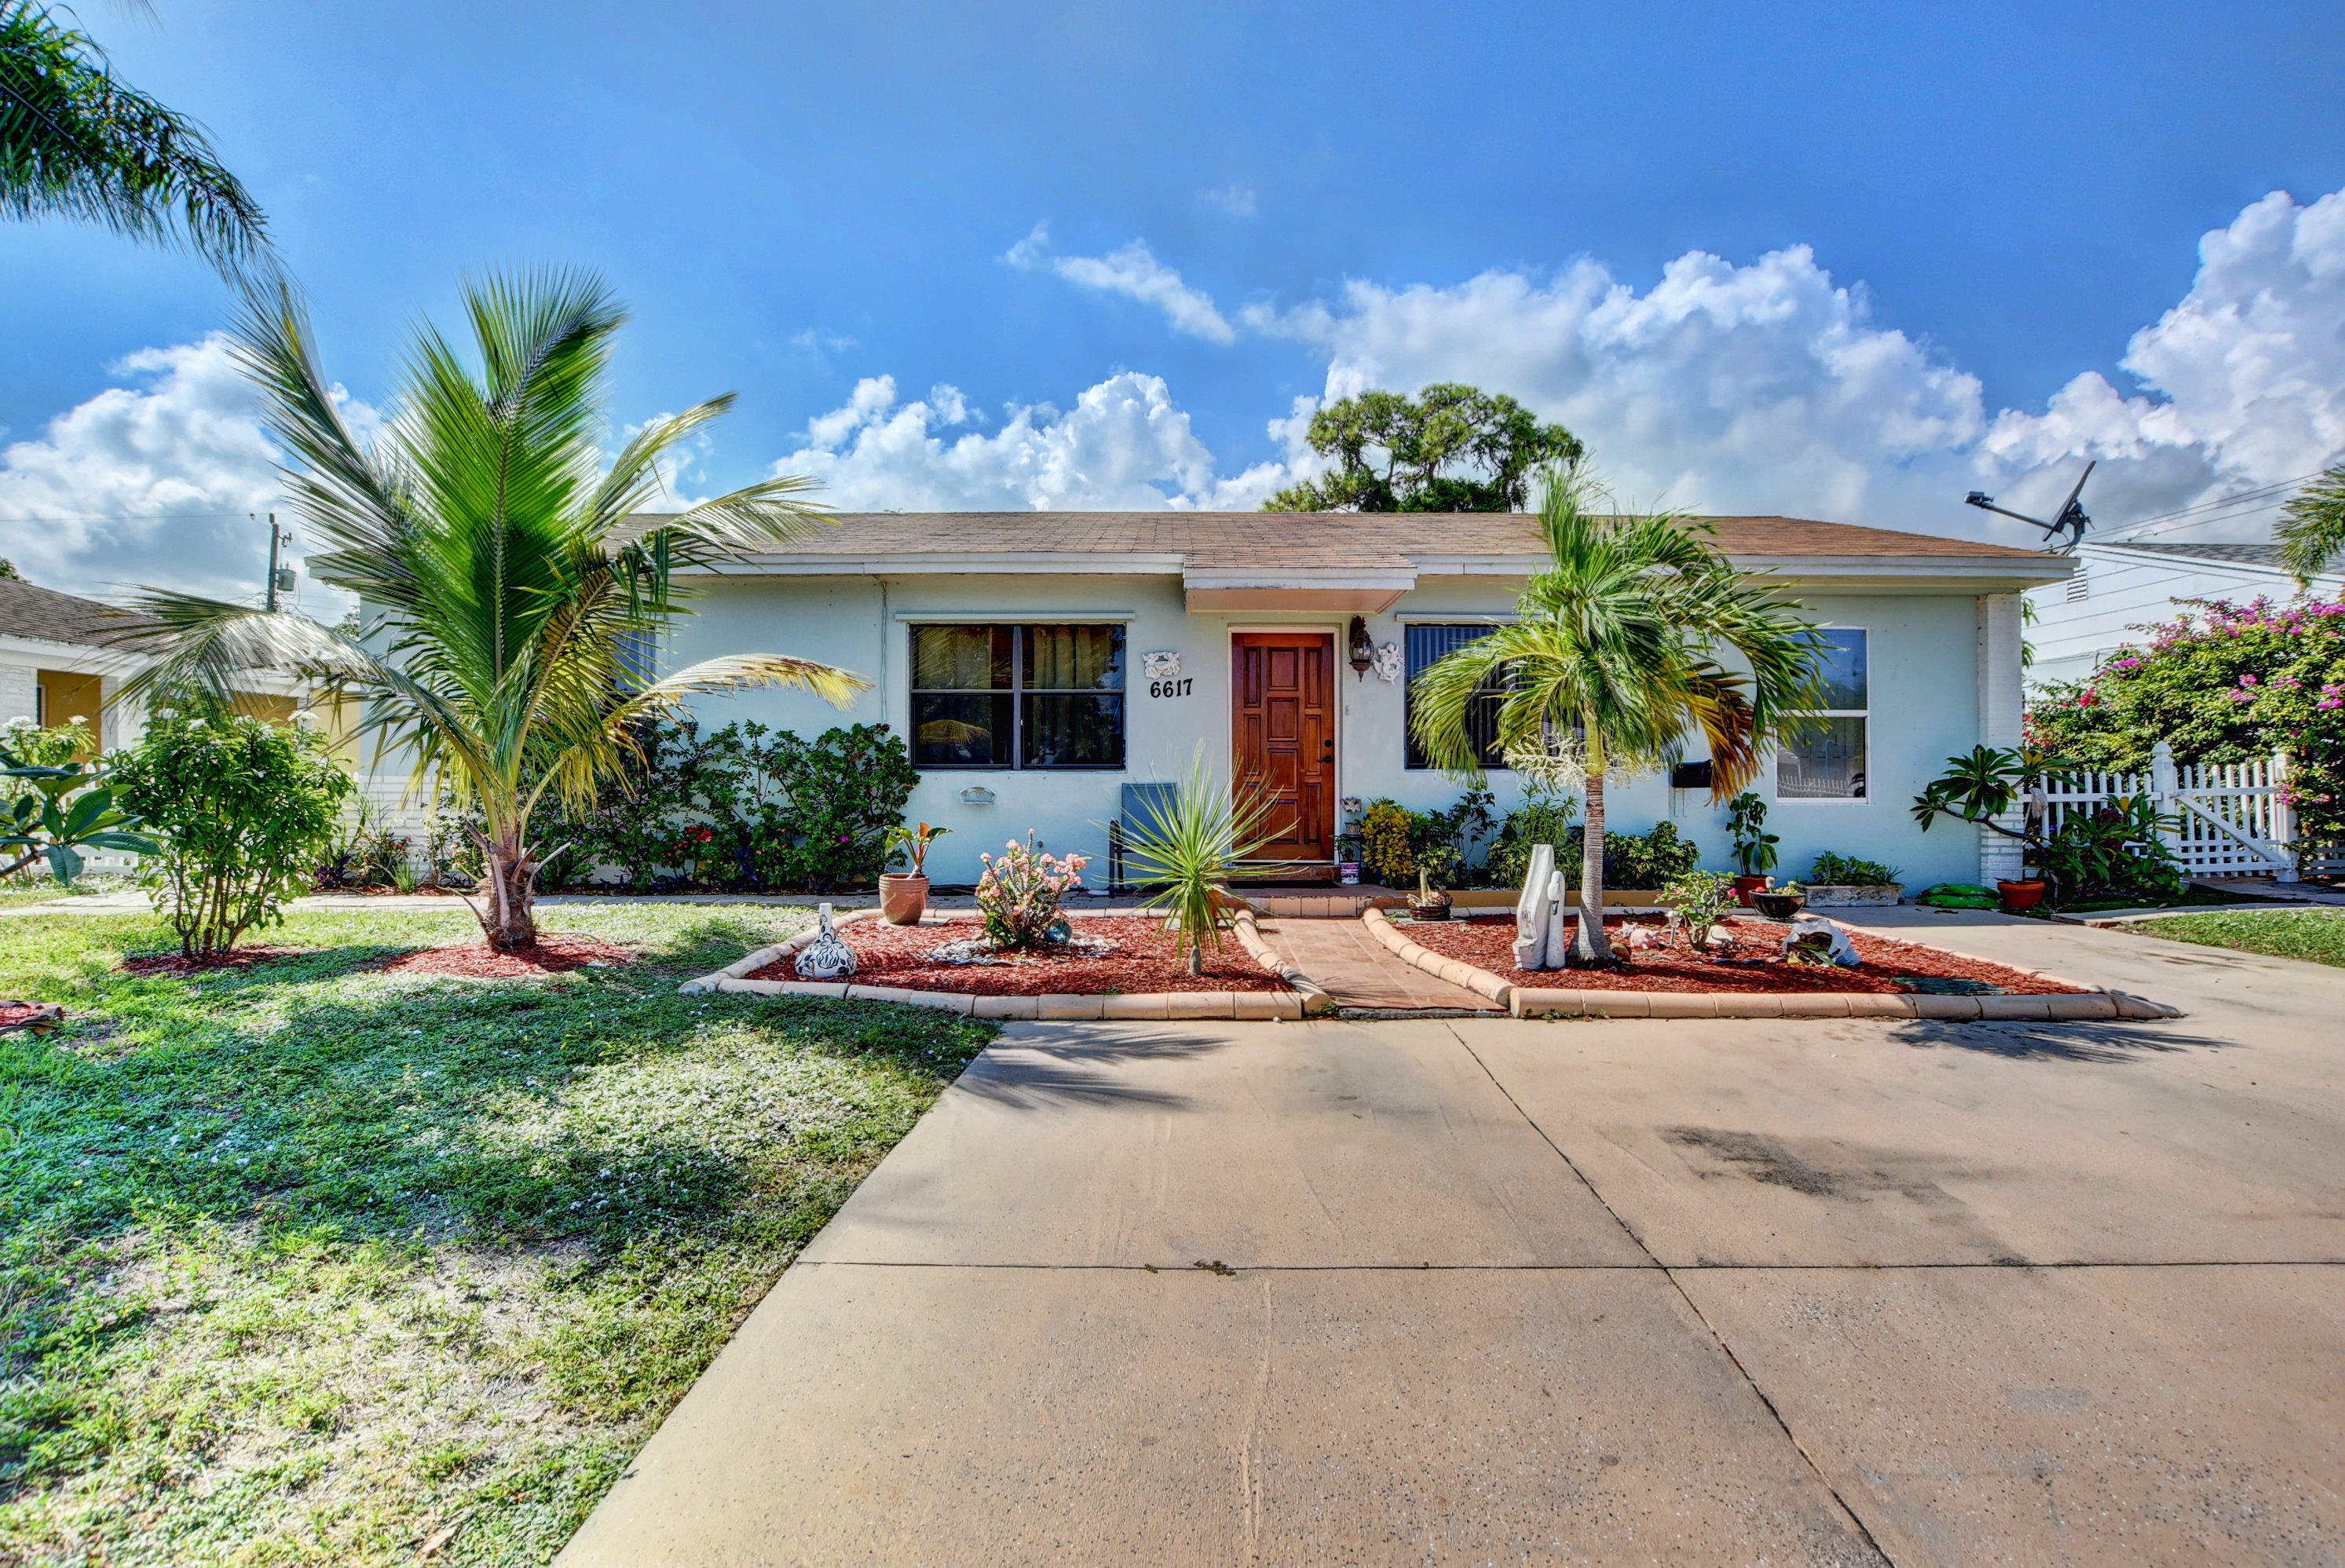 Photo of 6617 Lytle Court, West Palm Beach, FL 33405